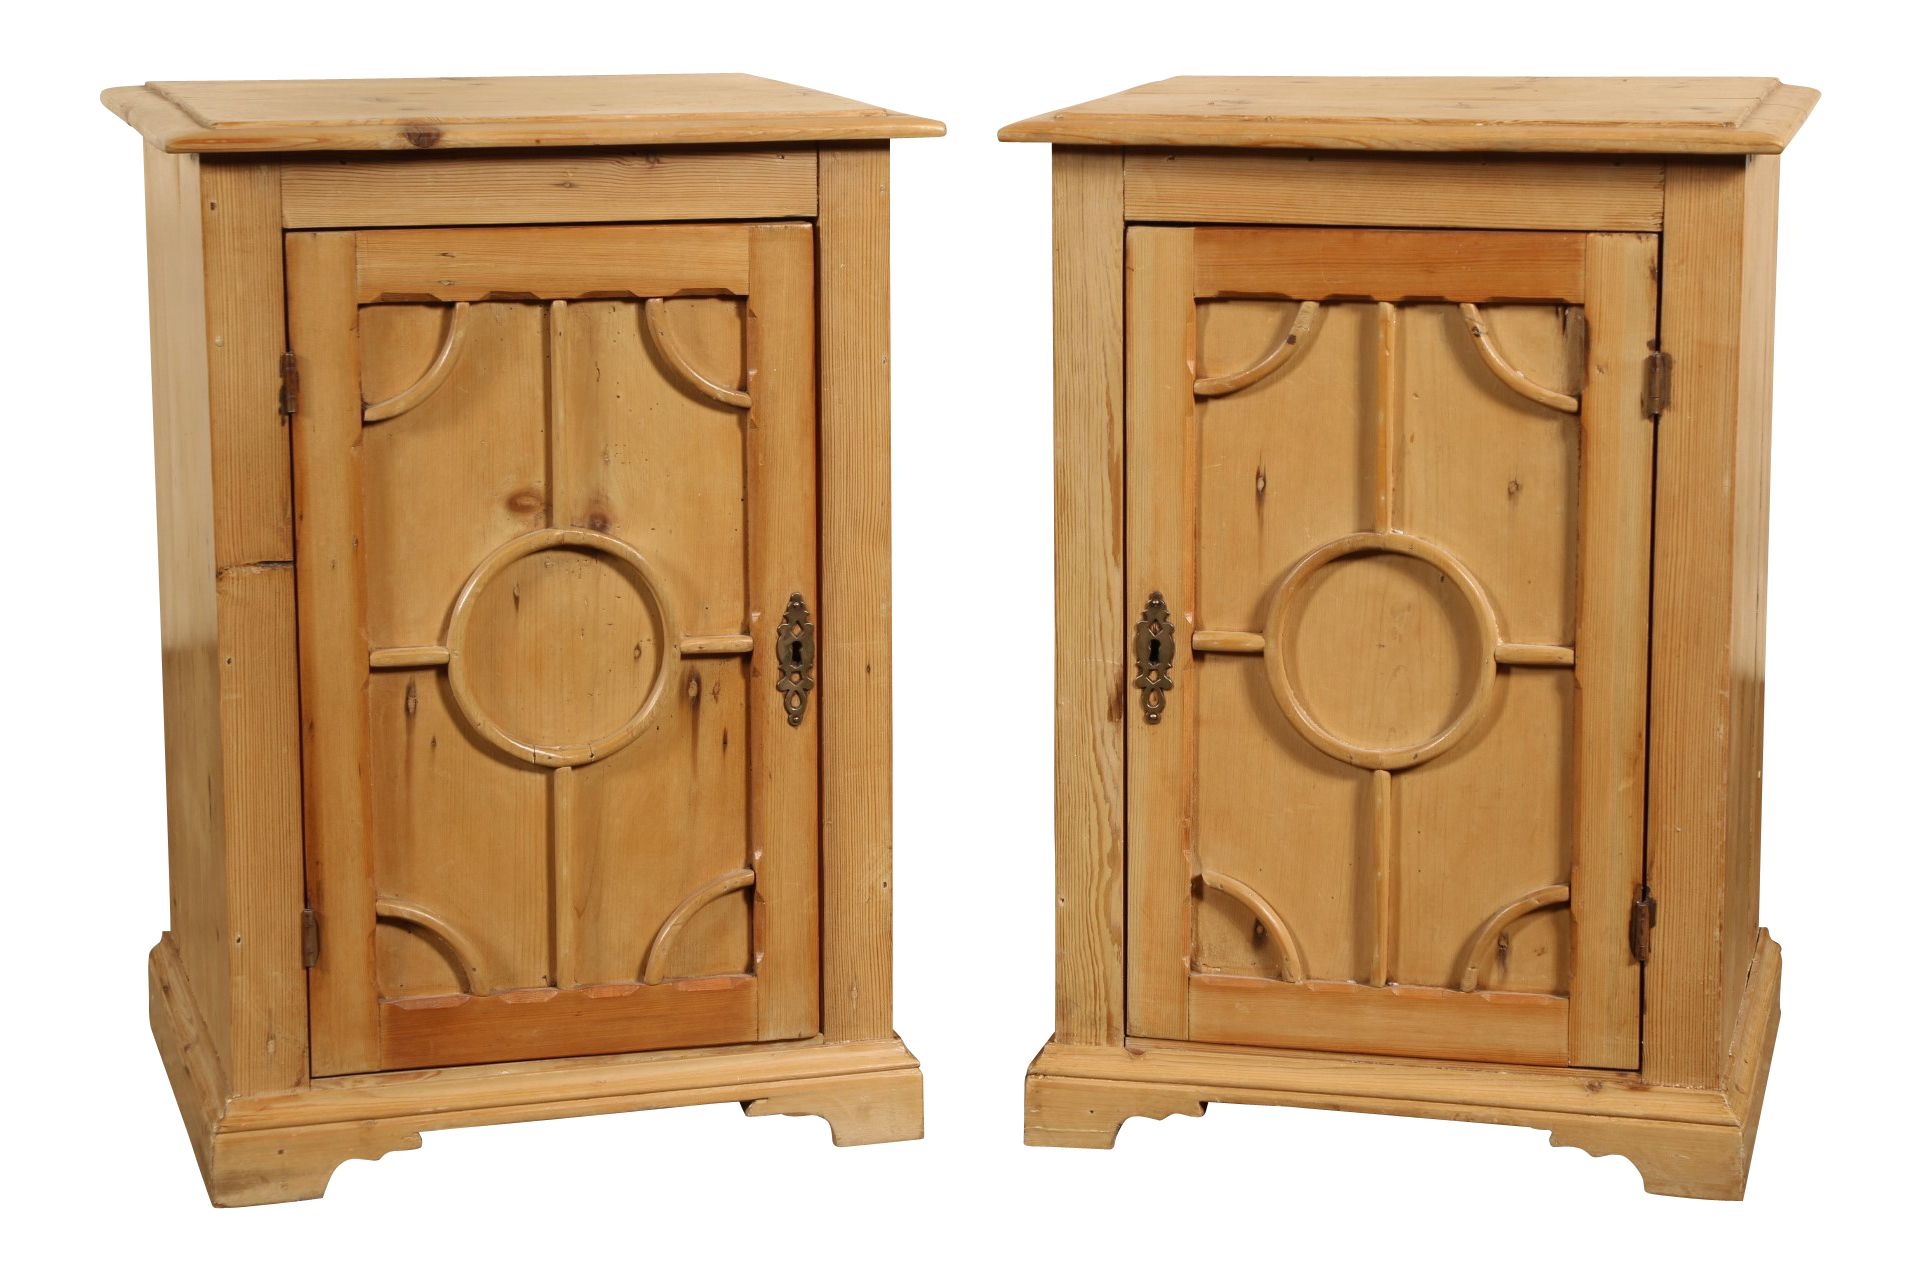 Pair of English pine cabinets plank construction with raised